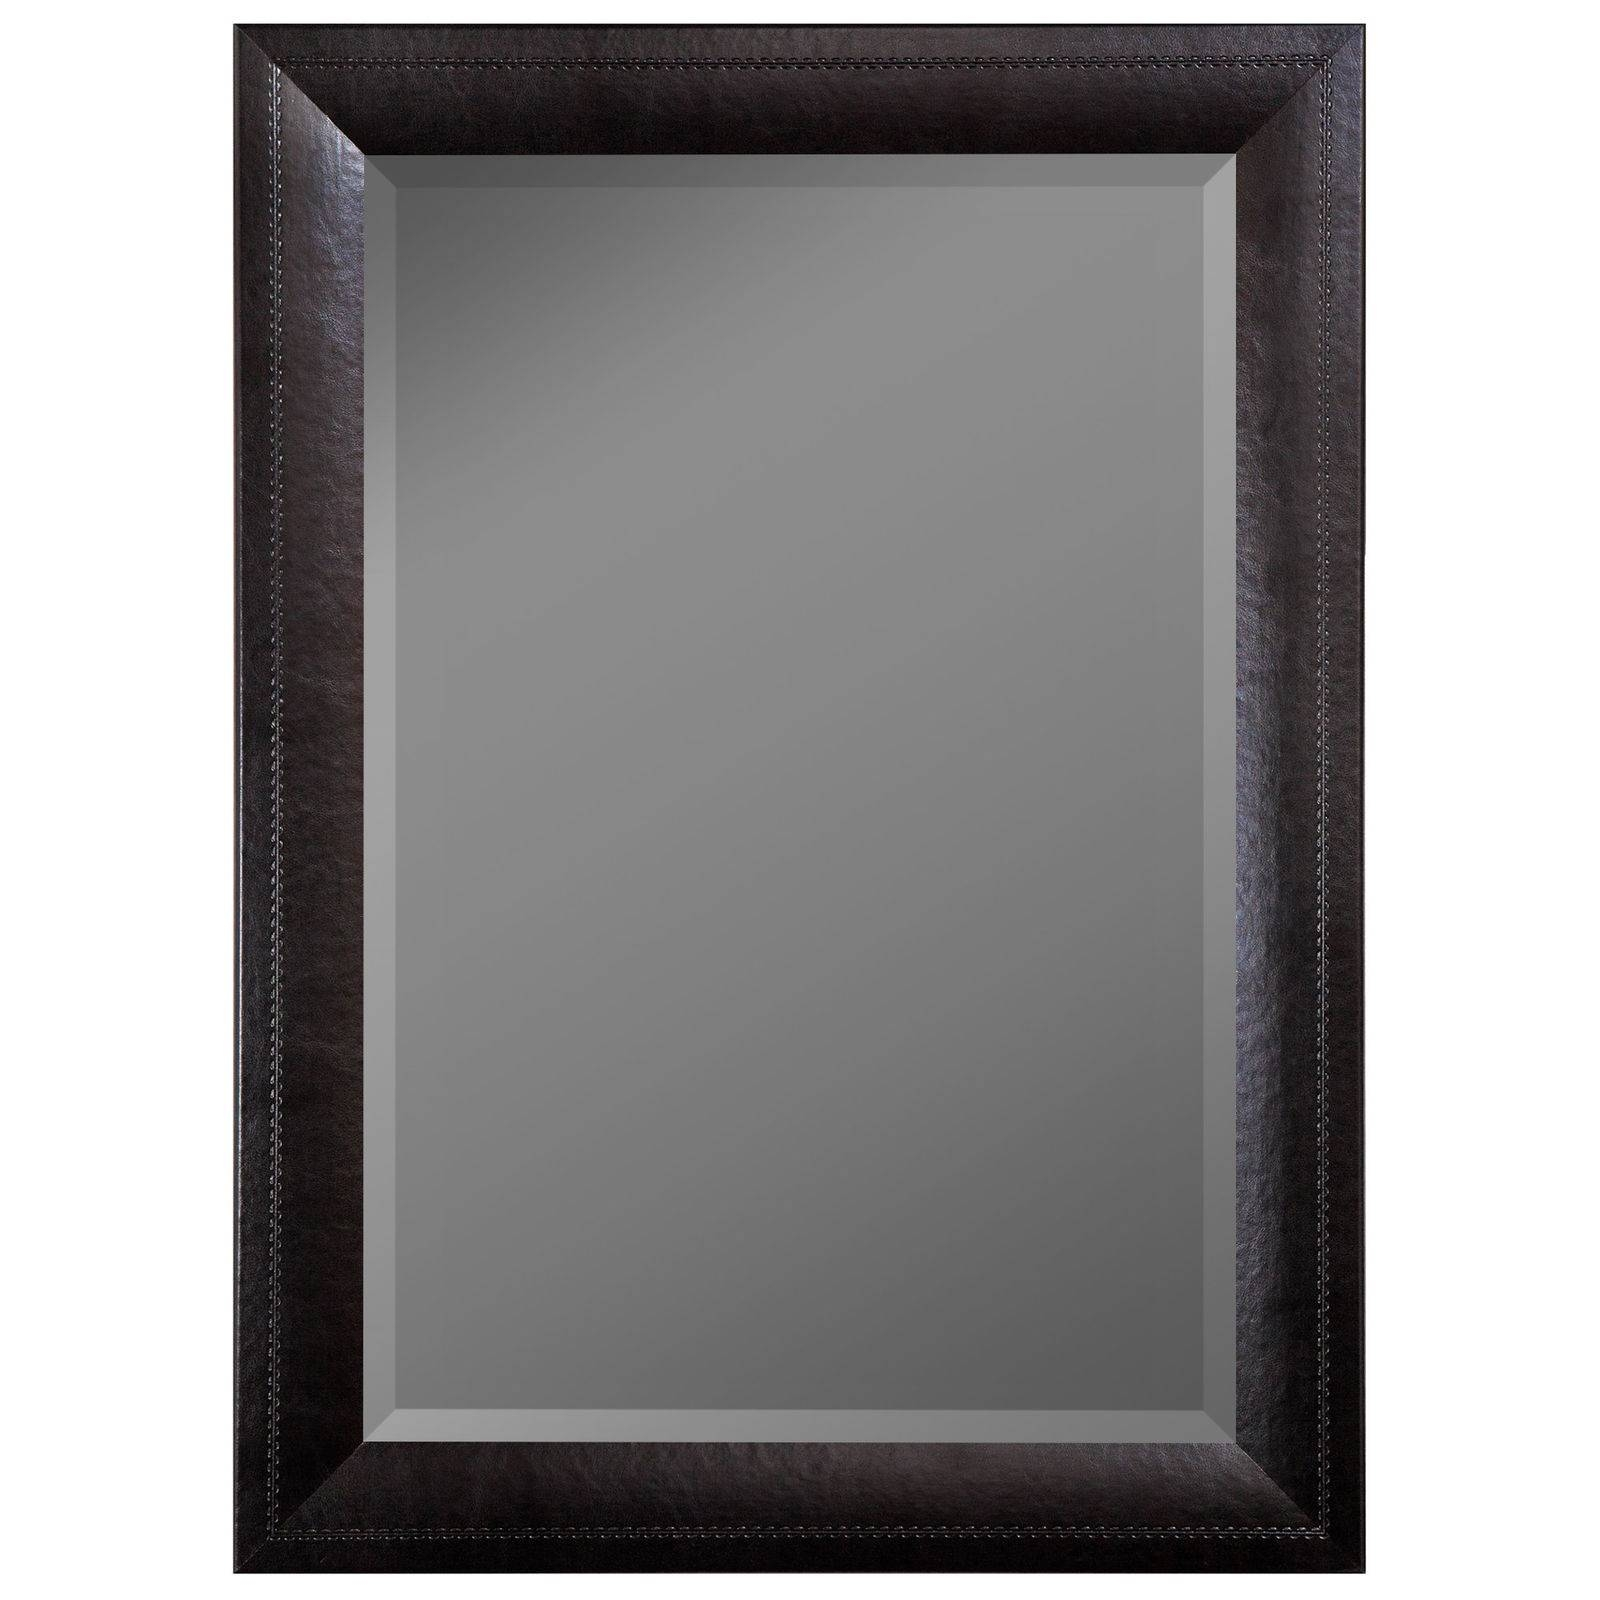 Hitchcock Butterfield Black Saddle Stitched Leather Framed Mirror In Black Leather Framed Mirrors (View 2 of 15)